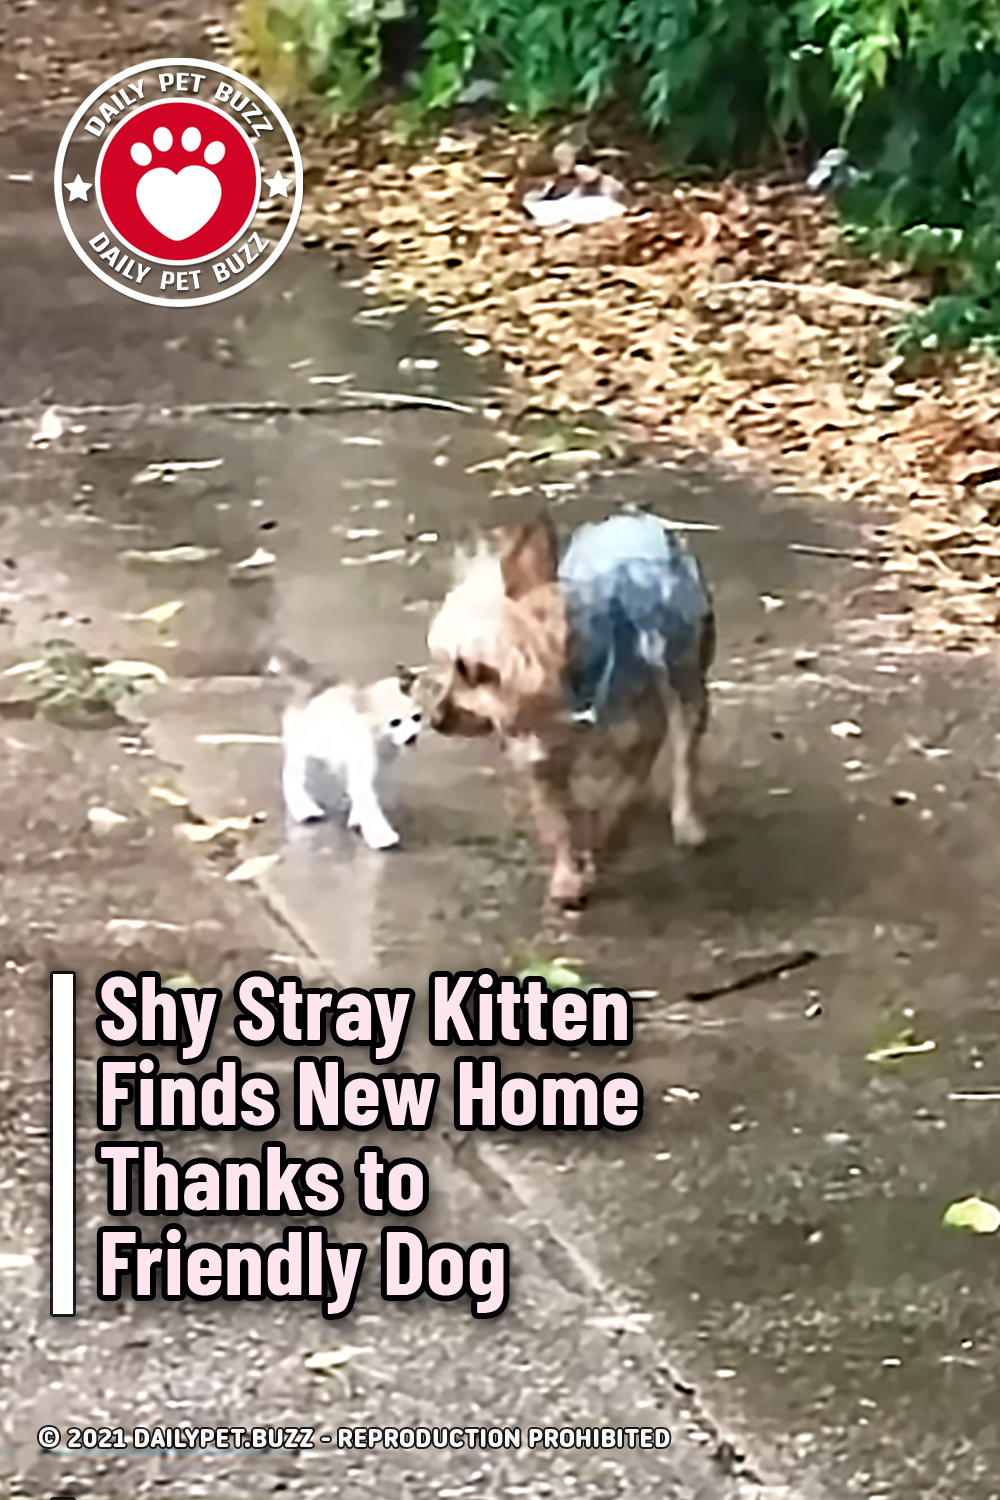 Shy Stray Kitten Finds New Home Thanks to Friendly Dog